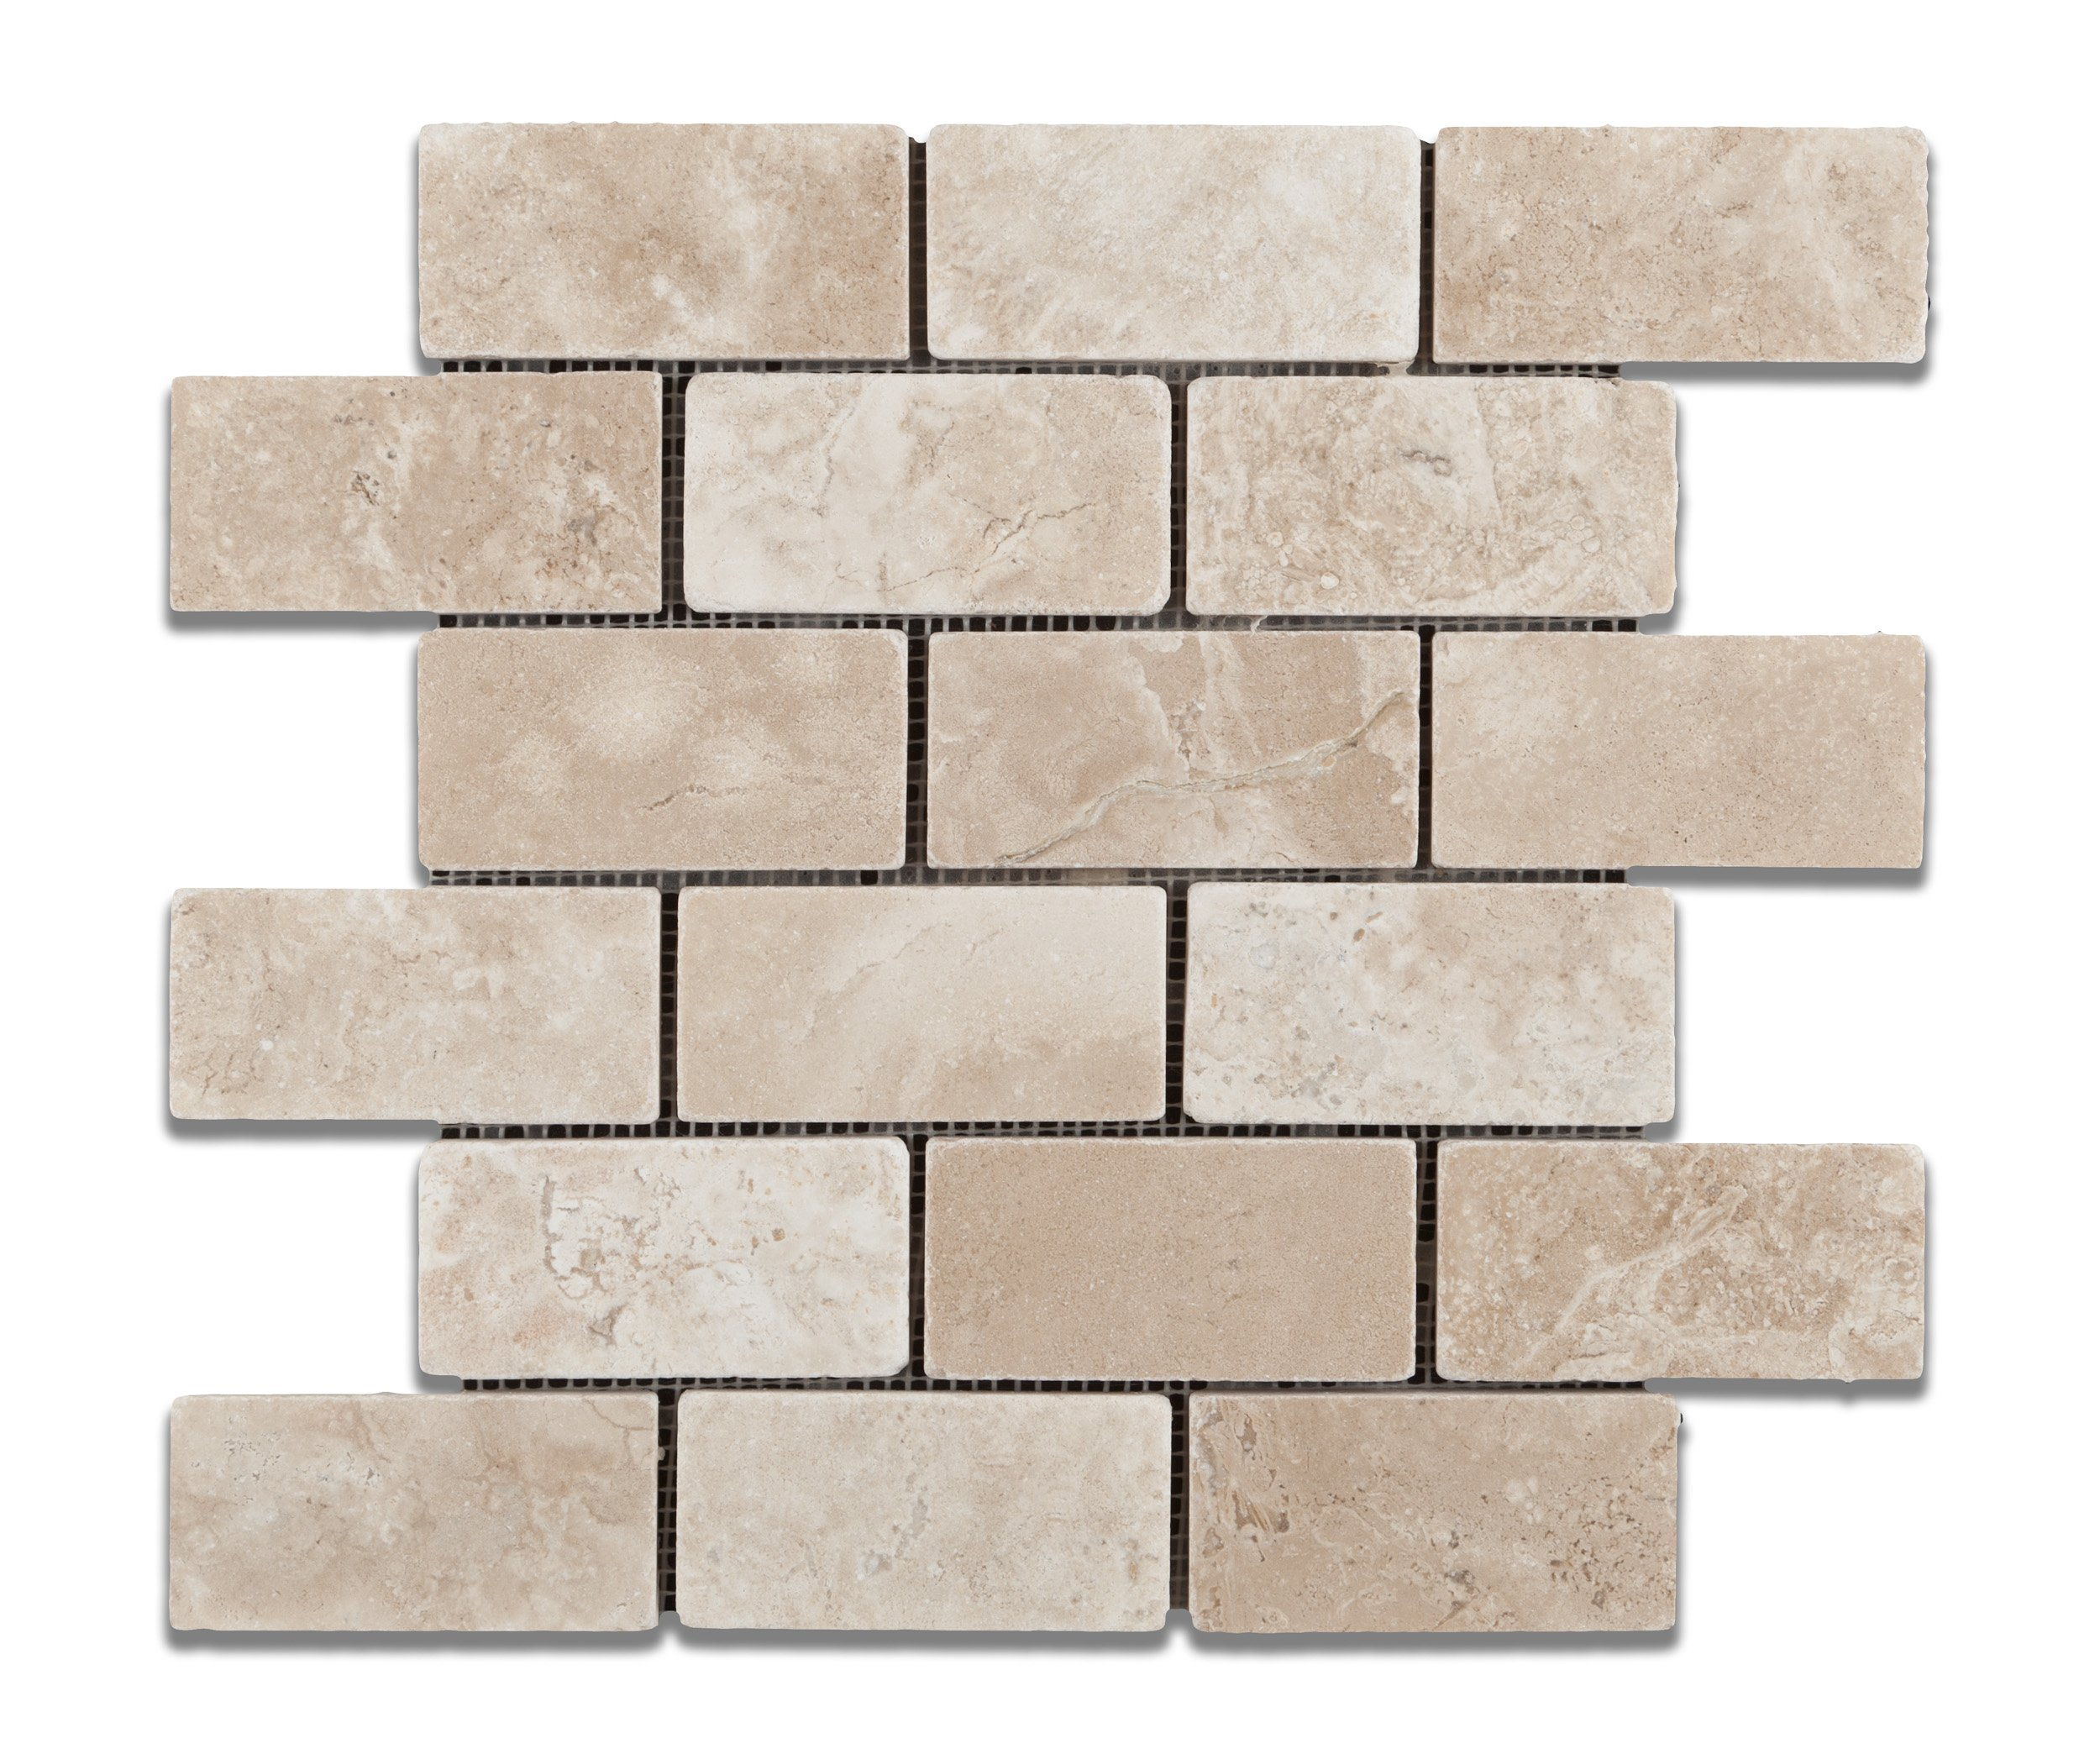 Durango Cream (Paredon) Travertine 2 X 4 Tumbled Brick Mosaic Tile - Lot of 50 Sheets